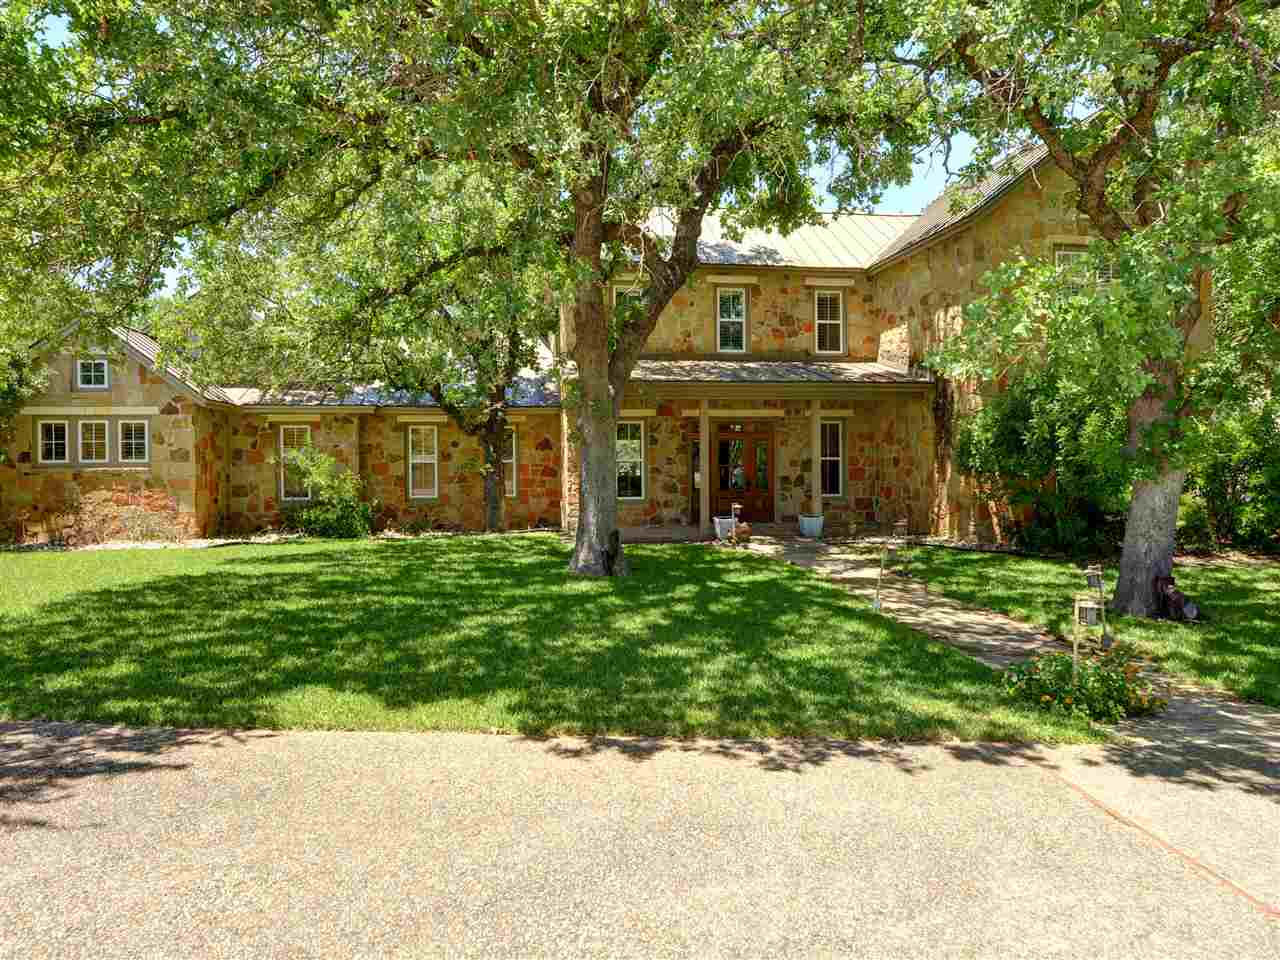 412 Haney Trace Horseshoe Bay Real Estate Home Listings - RE/MAX Horseshoe Bay Resort Sales, Co. Lake LBJ Real Estate